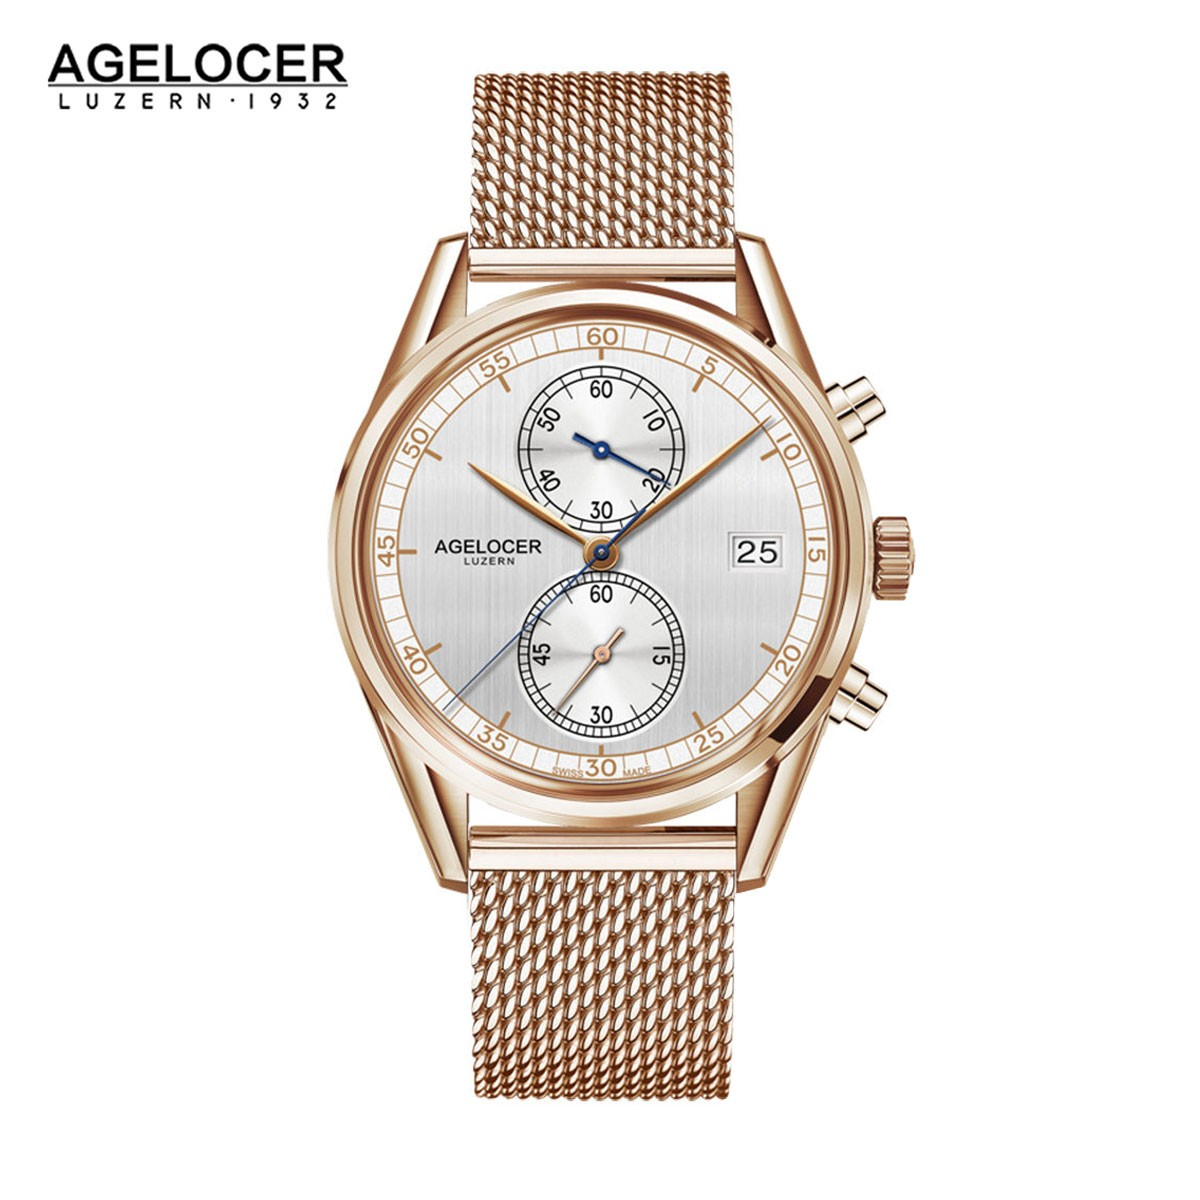 Agelocer Trinidad 40mm Rose Gold 2102D9